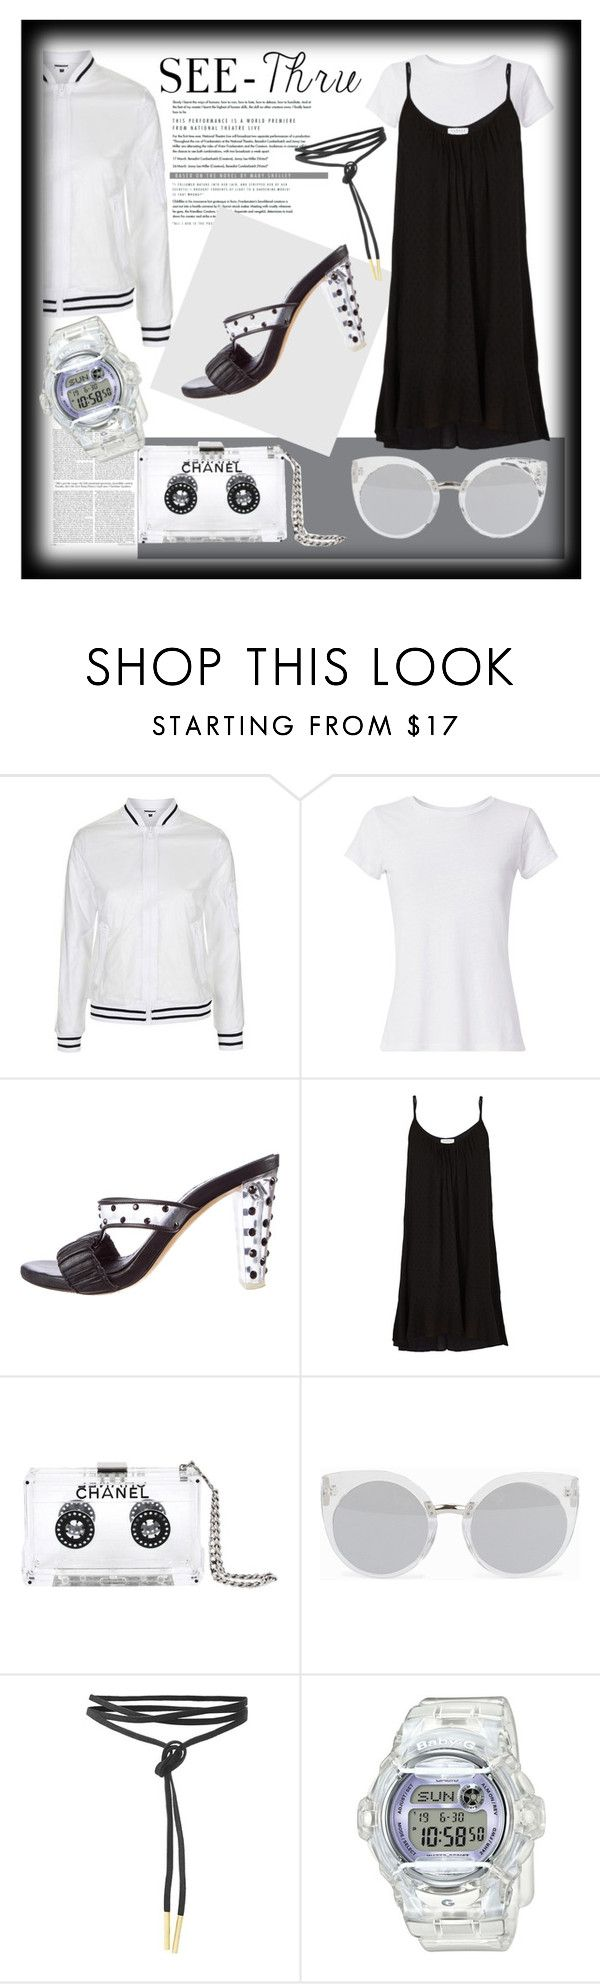 """See Through Trend"" by zippy135 liked on Polyvore"